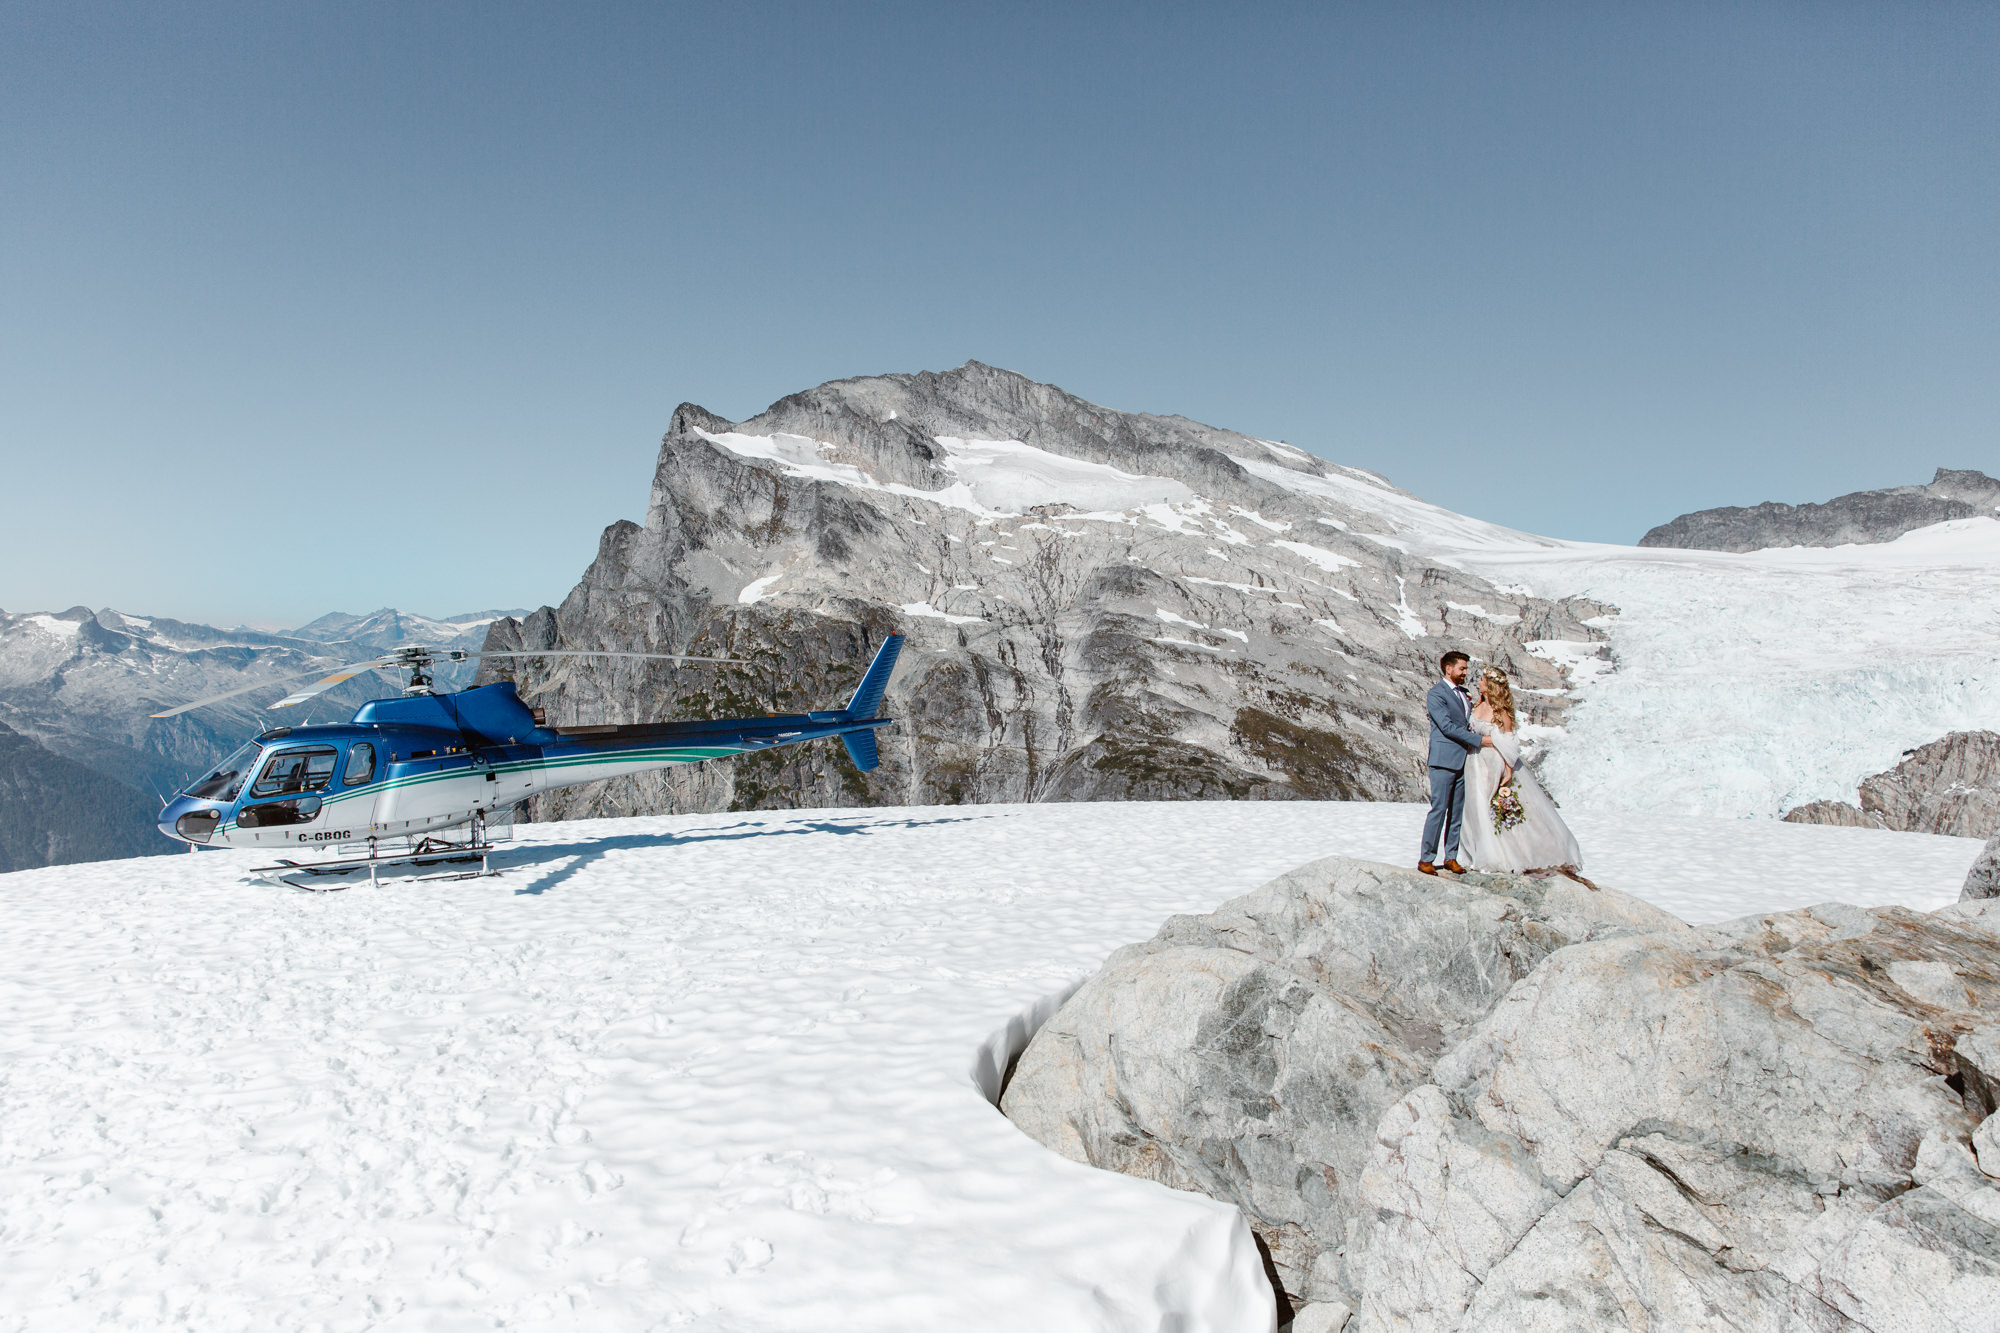 Bride and groom posing for wedding photos in the mountains near the helicopter with the glacier on the background